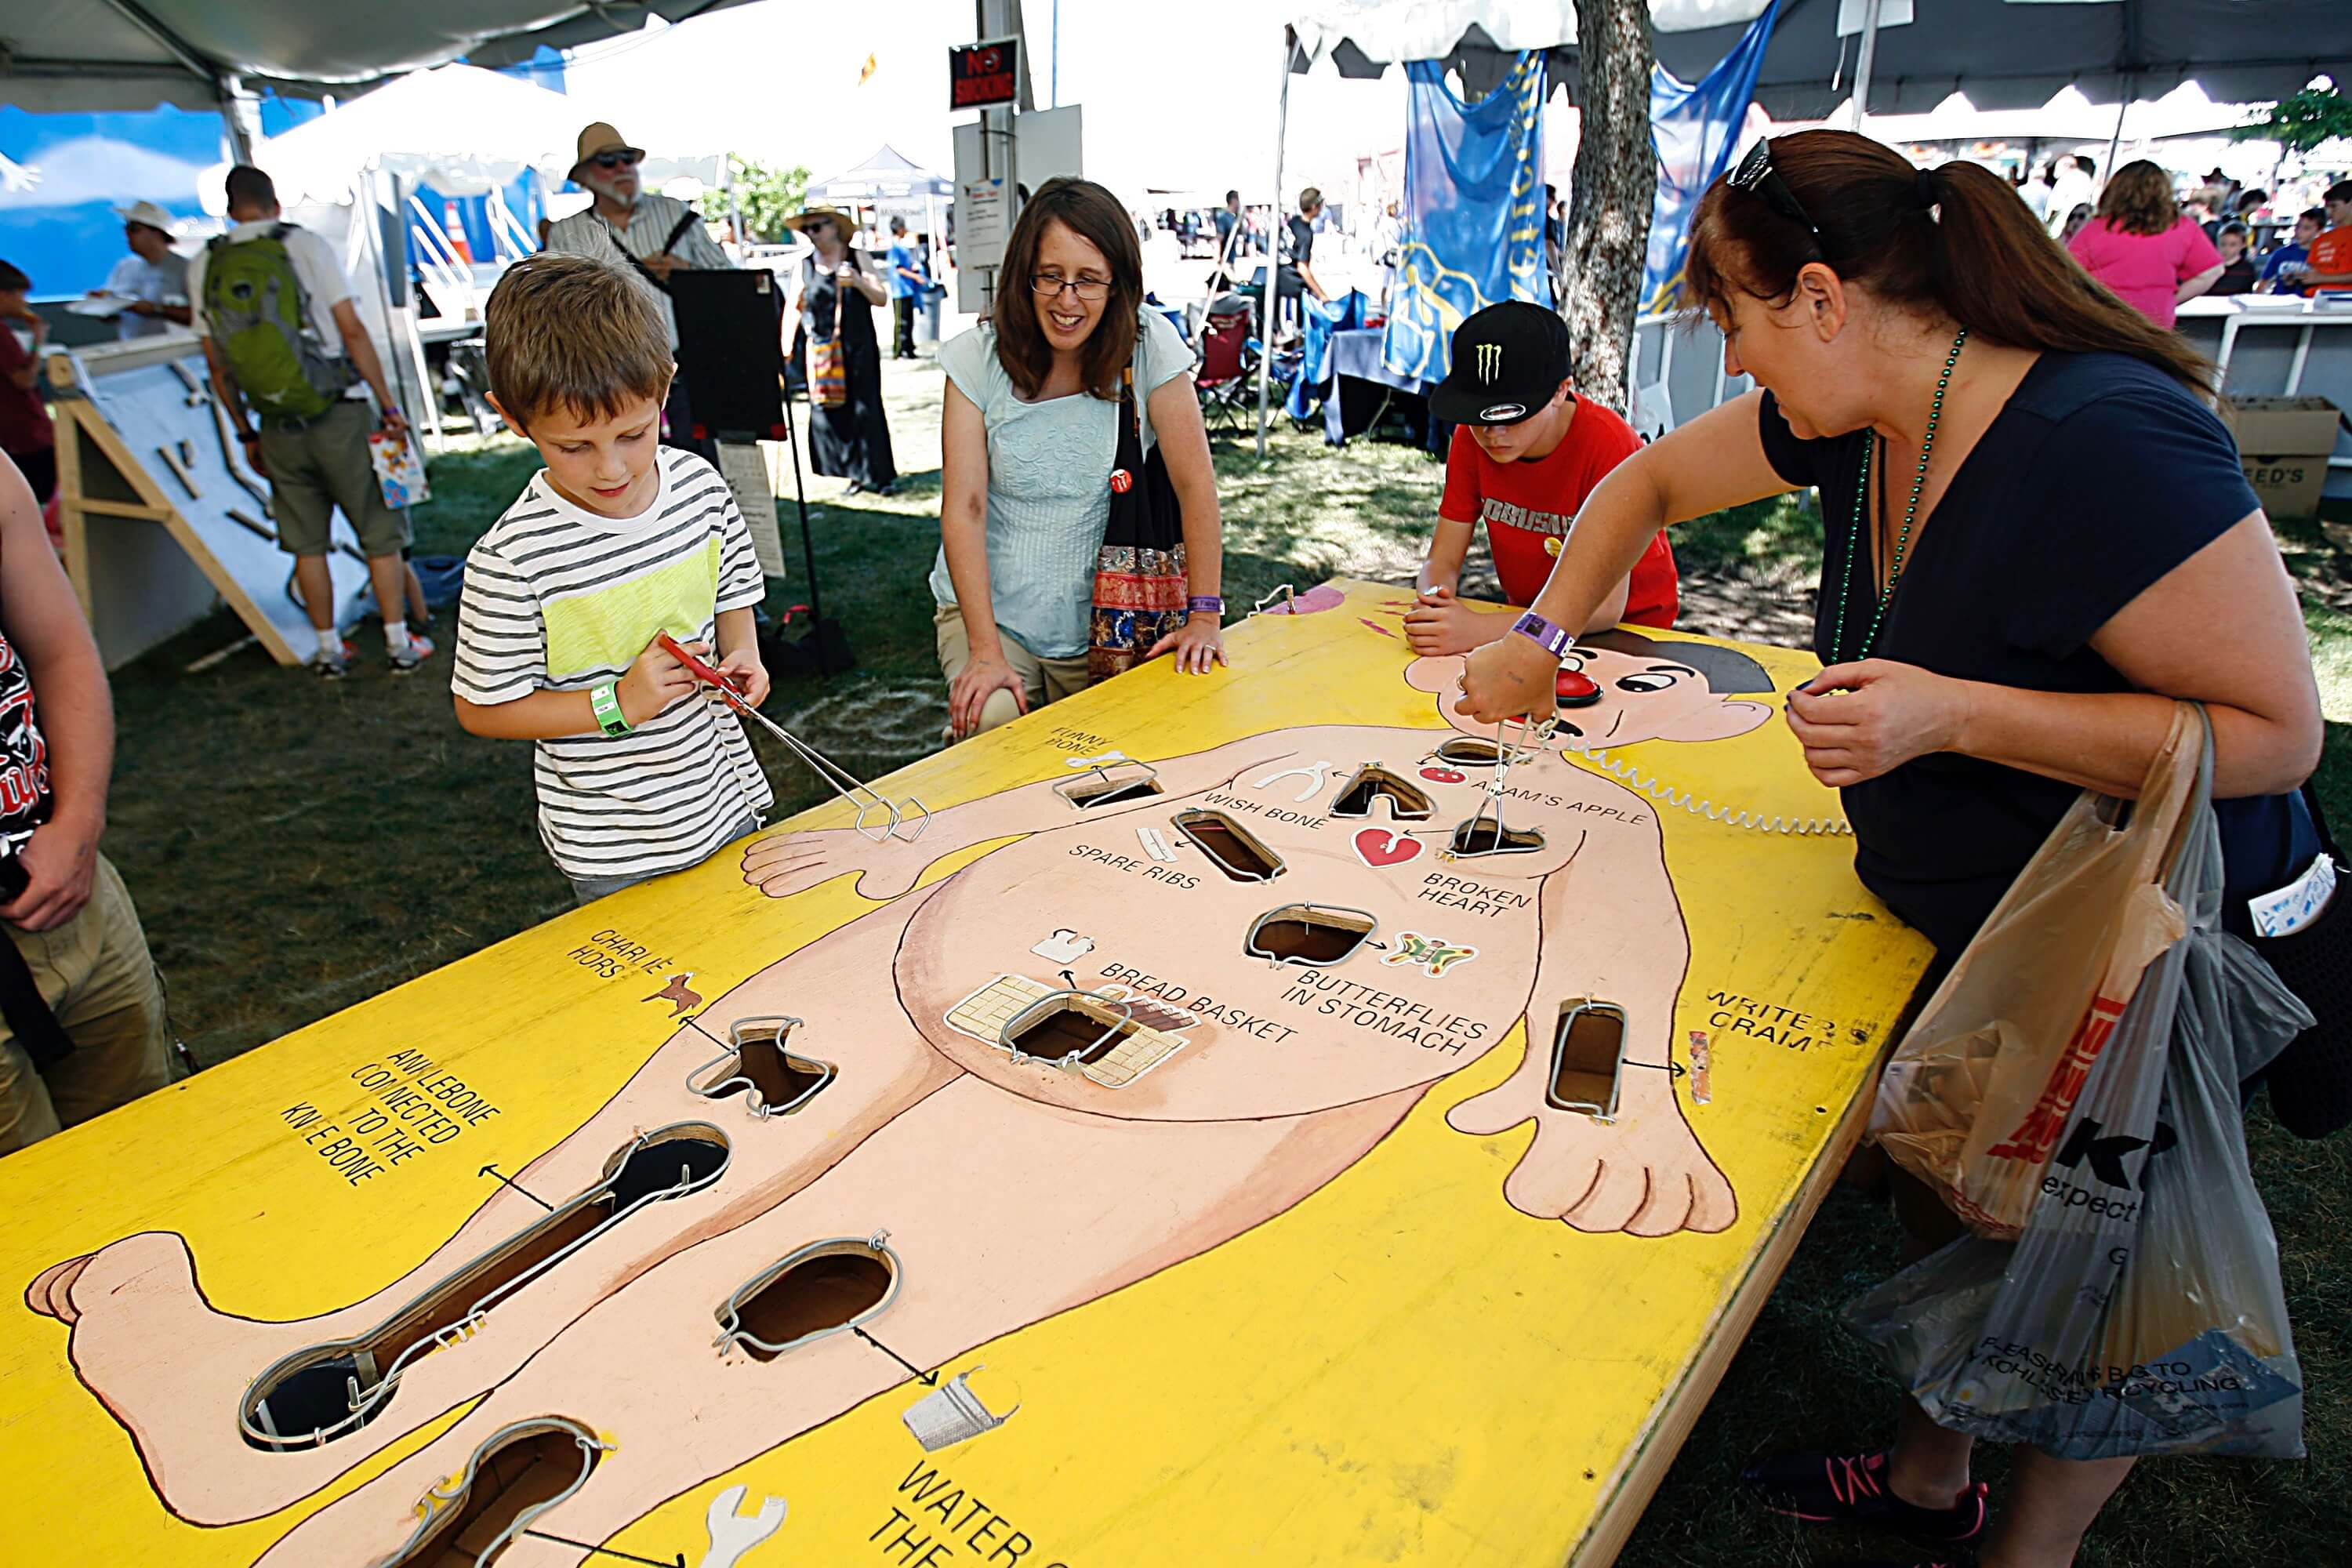 Maker Faire Detroit 2015 at The Henry Ford in Dearborn, Mich. Sunday, July 26, 2015. Gary Malerba/Special To The Henry Ford